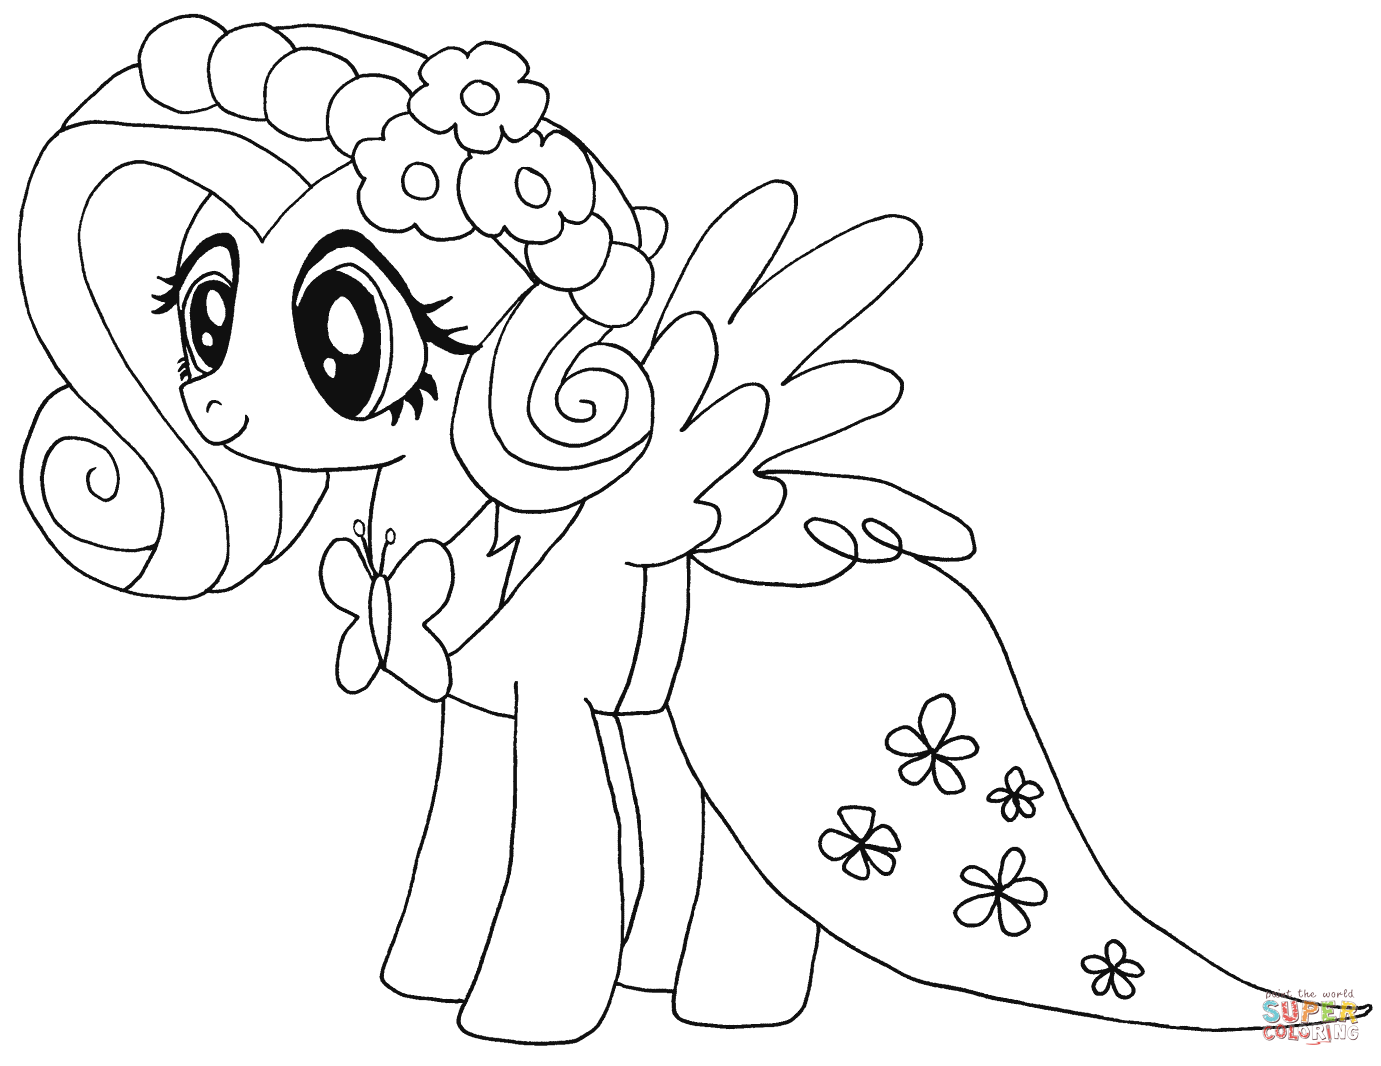 Original My Little Pony Coloring Pages At Getdrawingscom Free For